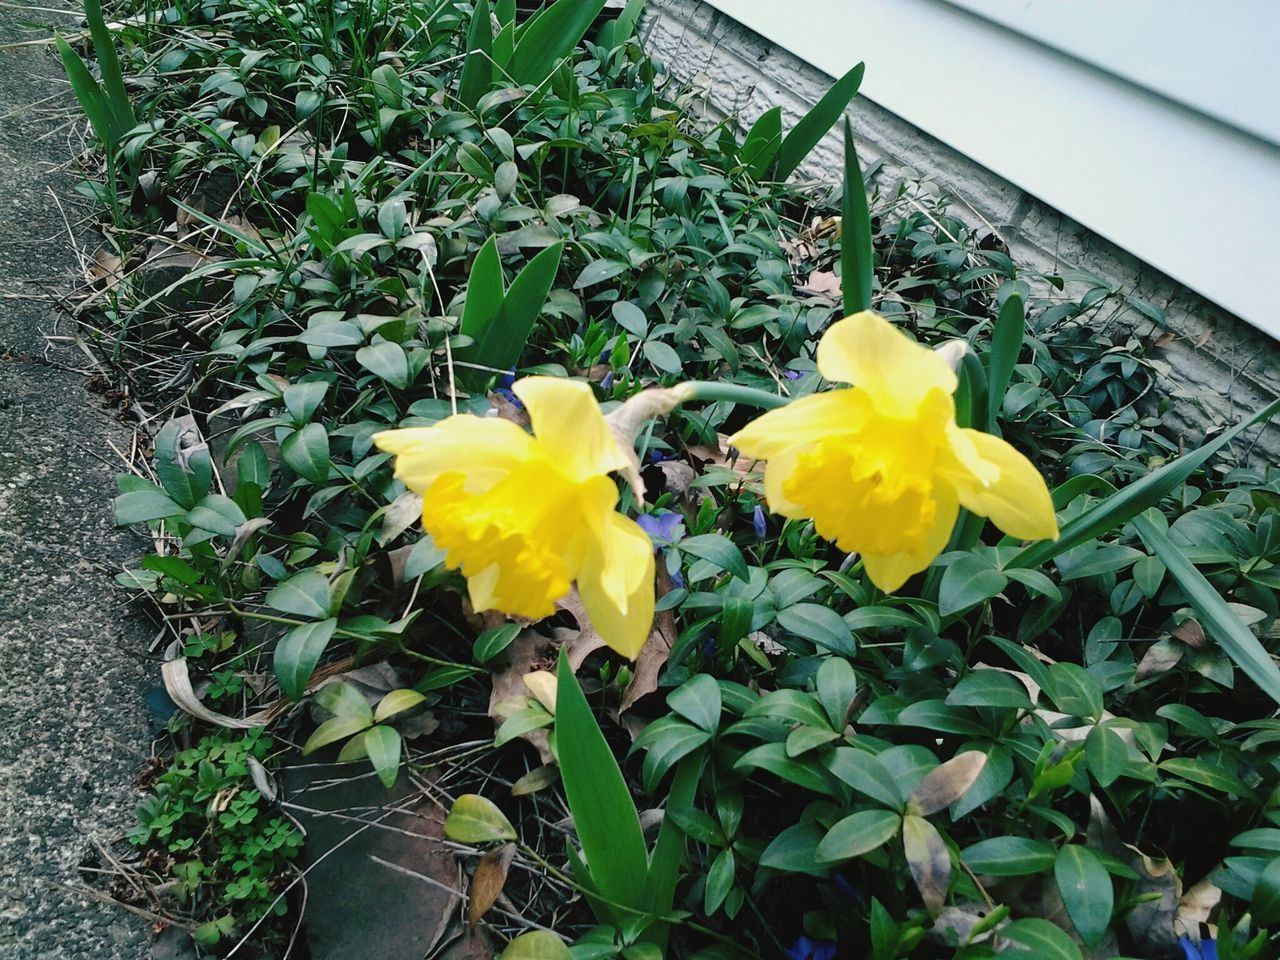 flower, yellow, growth, plant, petal, fragility, leaf, freshness, nature, beauty in nature, no people, flower head, daffodil, day, outdoors, green color, blooming, close-up